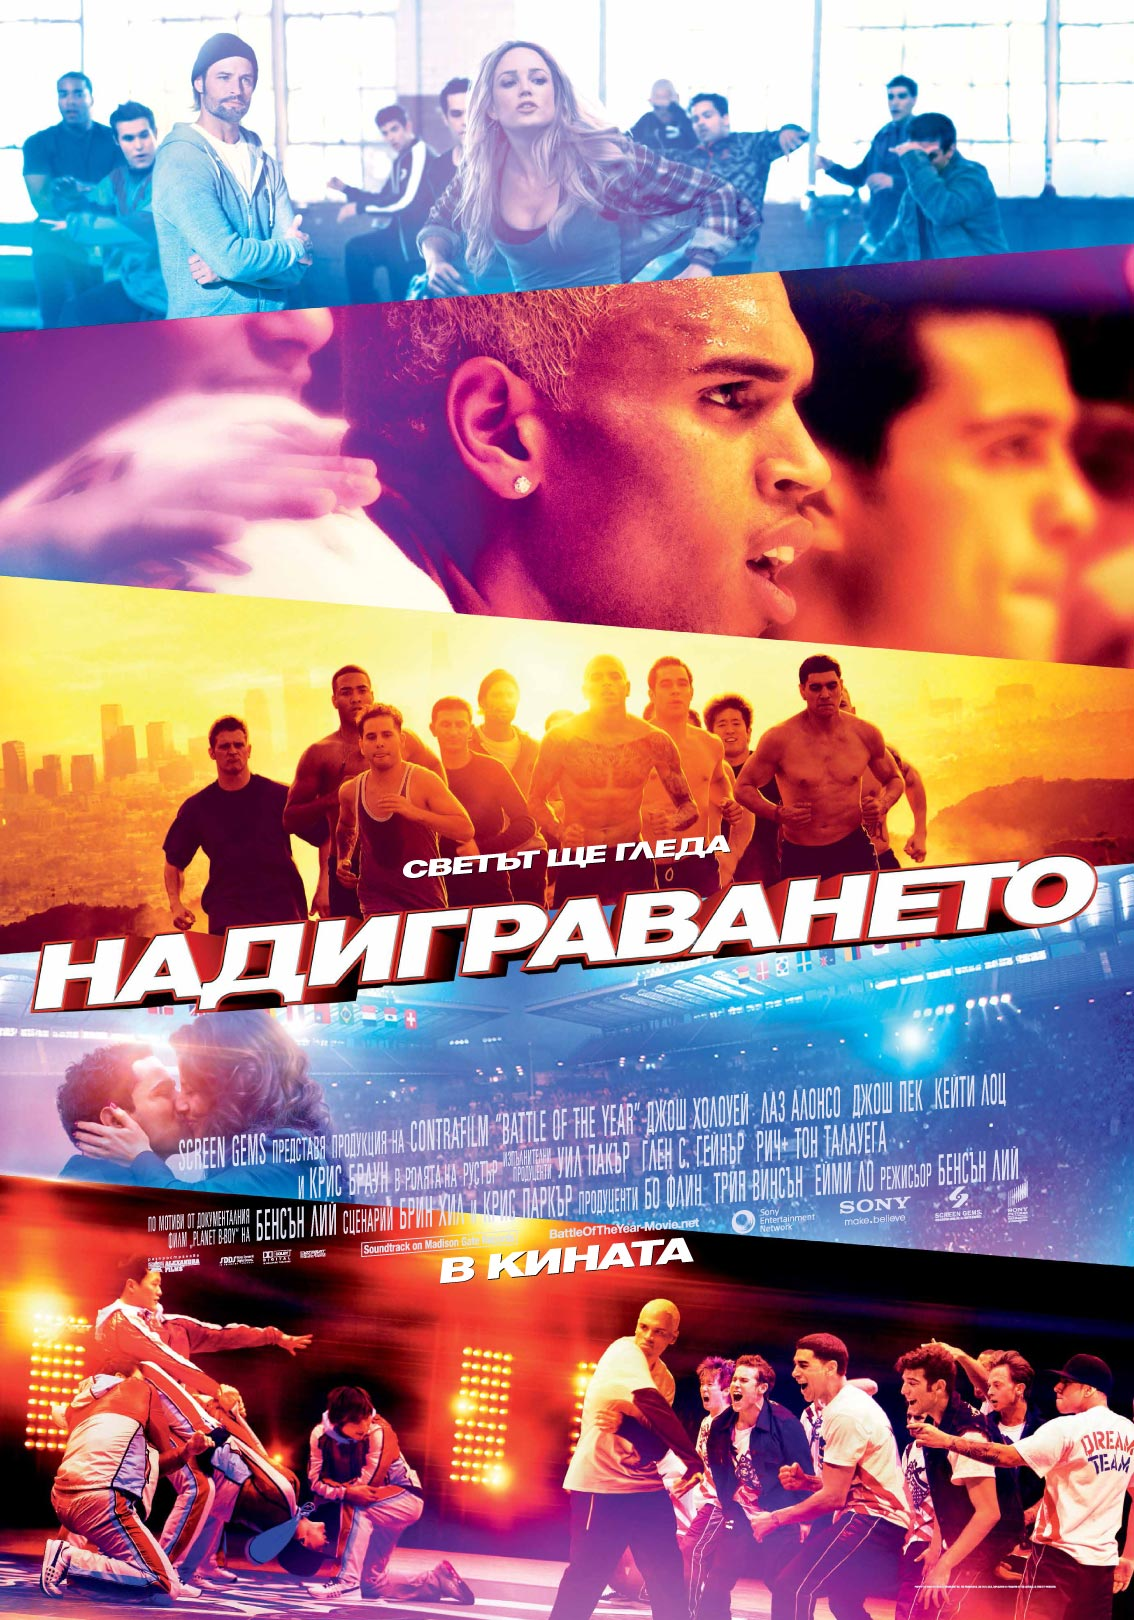 Battle of the Year: The Dream Team / Надиграването (2013)